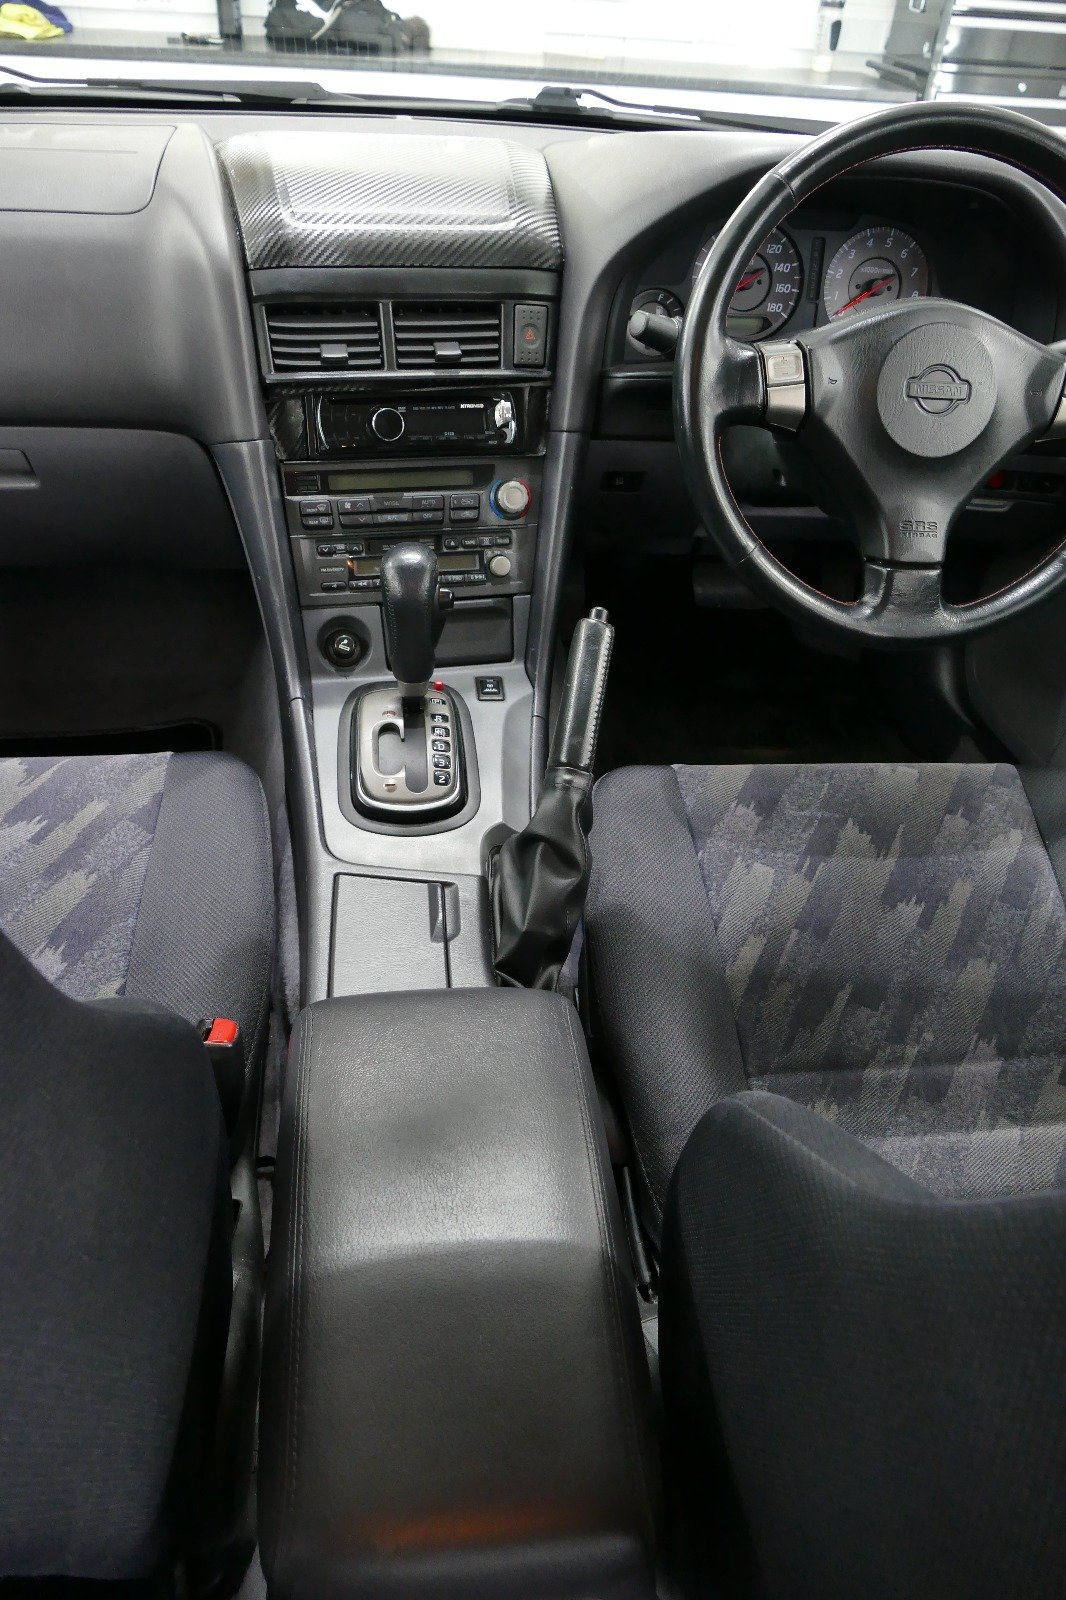 1998 Nissan Skyline R34 4 door Non Turbo Tiptronic For Sale (picture 3 of 6)